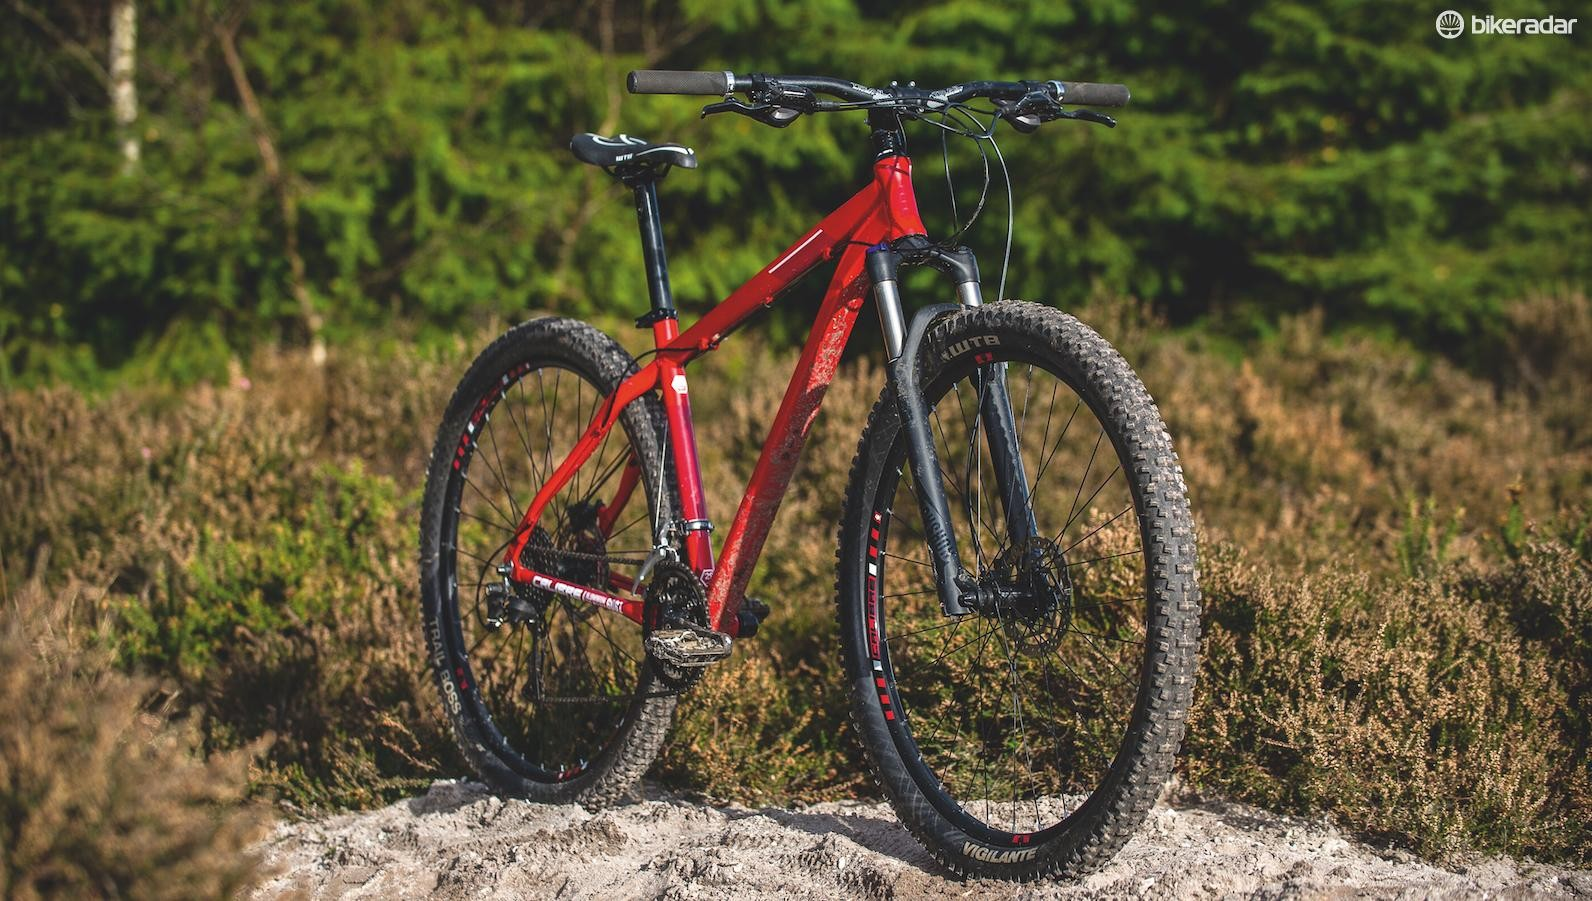 The Rake's wide bar, grippy front tyre and long/low geometry make it a proper ripper